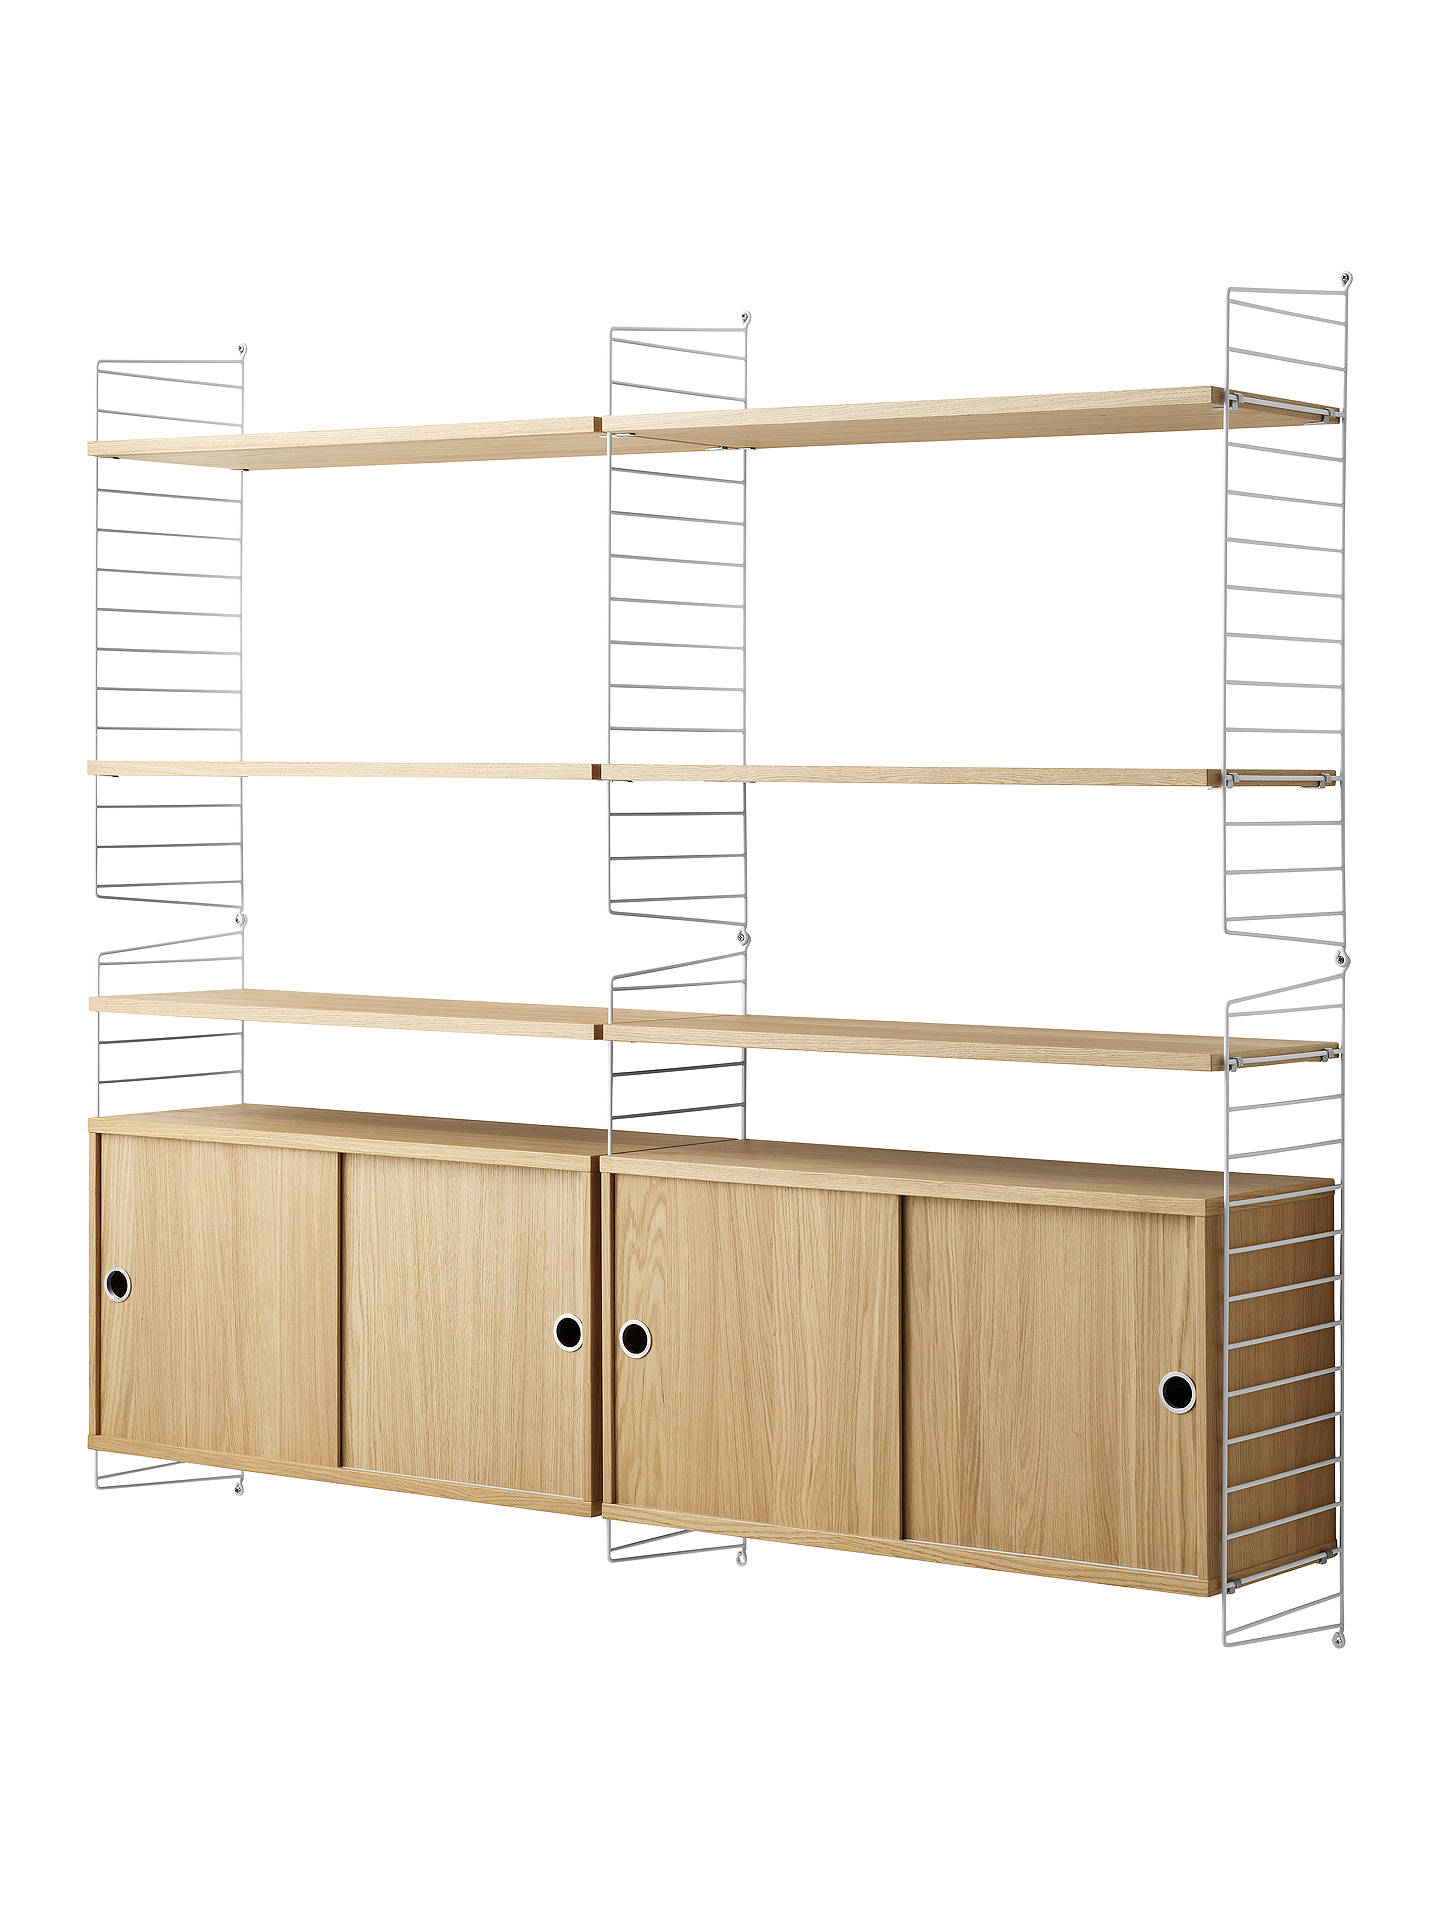 Brilliant String Shelving Unit With Double Cabinet And Wall Fastened Side Racks Oak White Home Interior And Landscaping Ferensignezvosmurscom